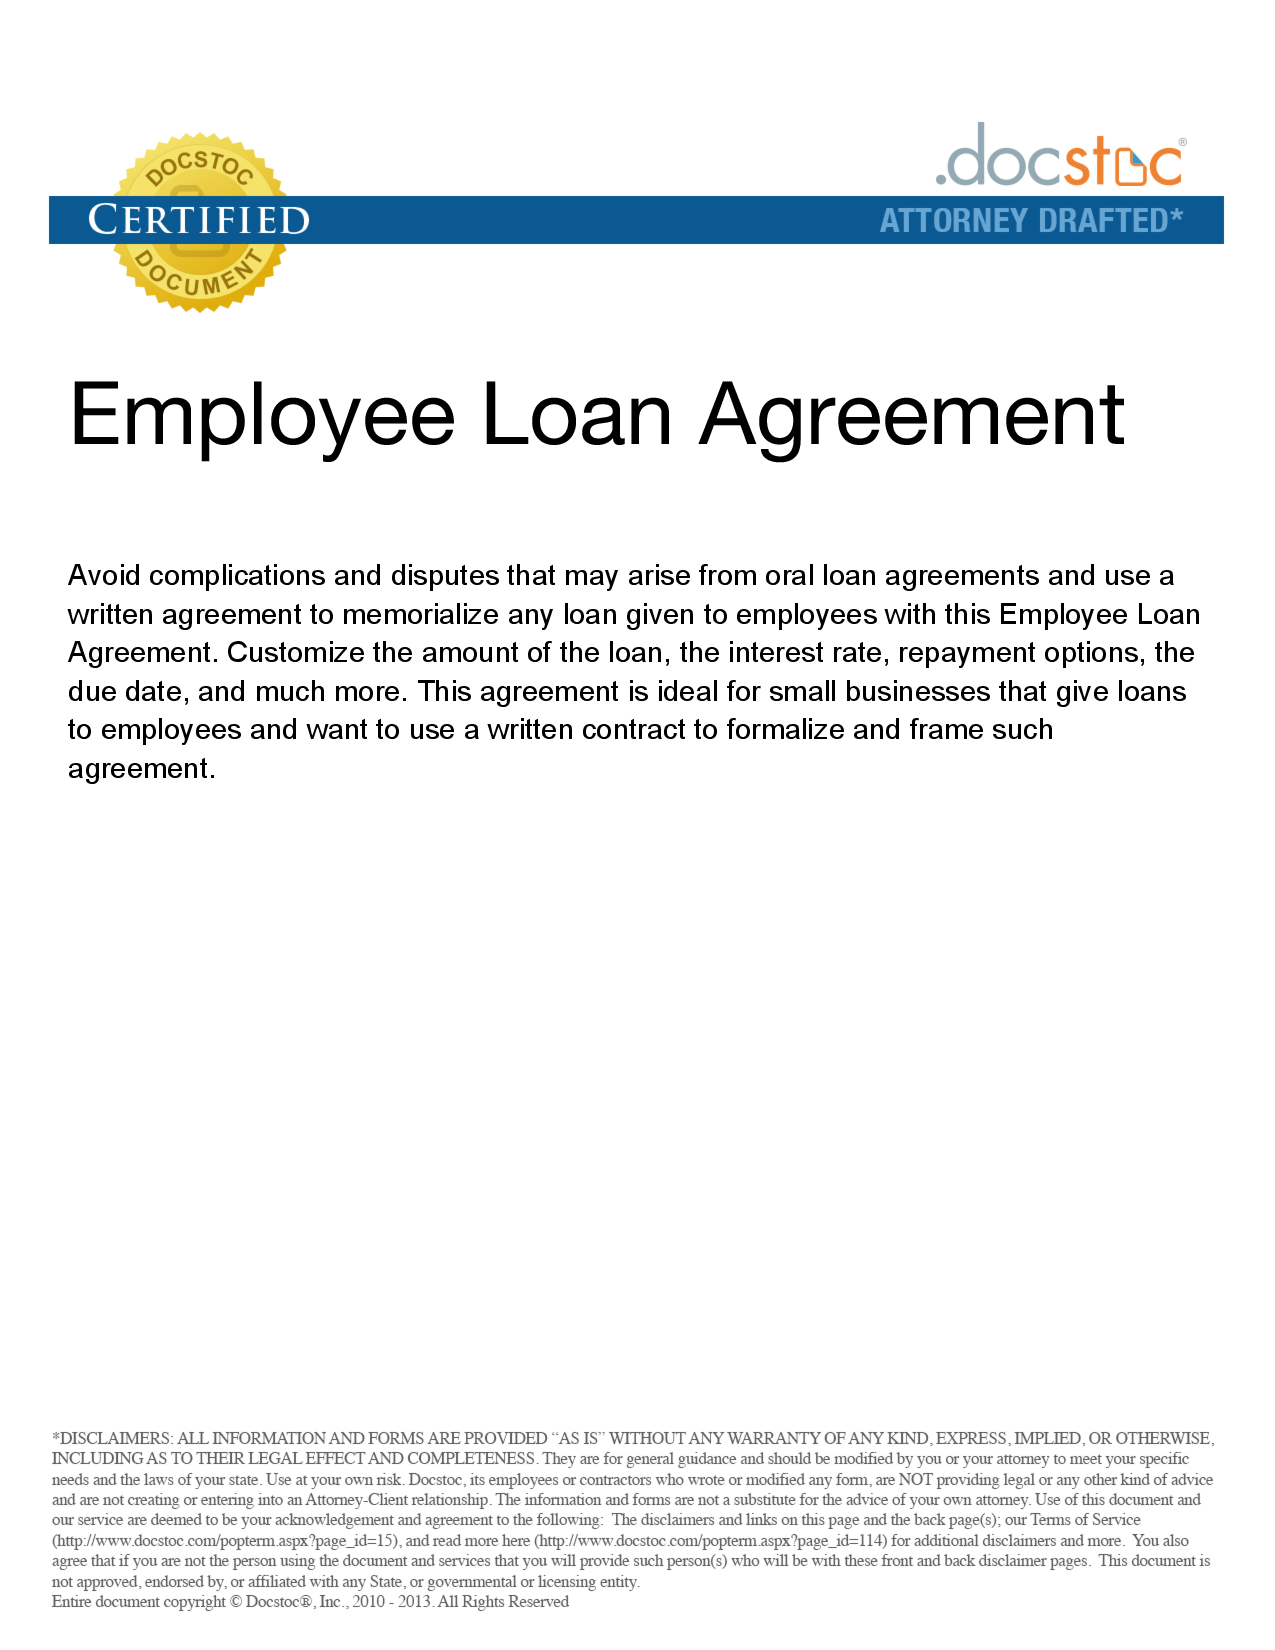 Personal Loan Repayment Agreement Template Koikoikoi Personal